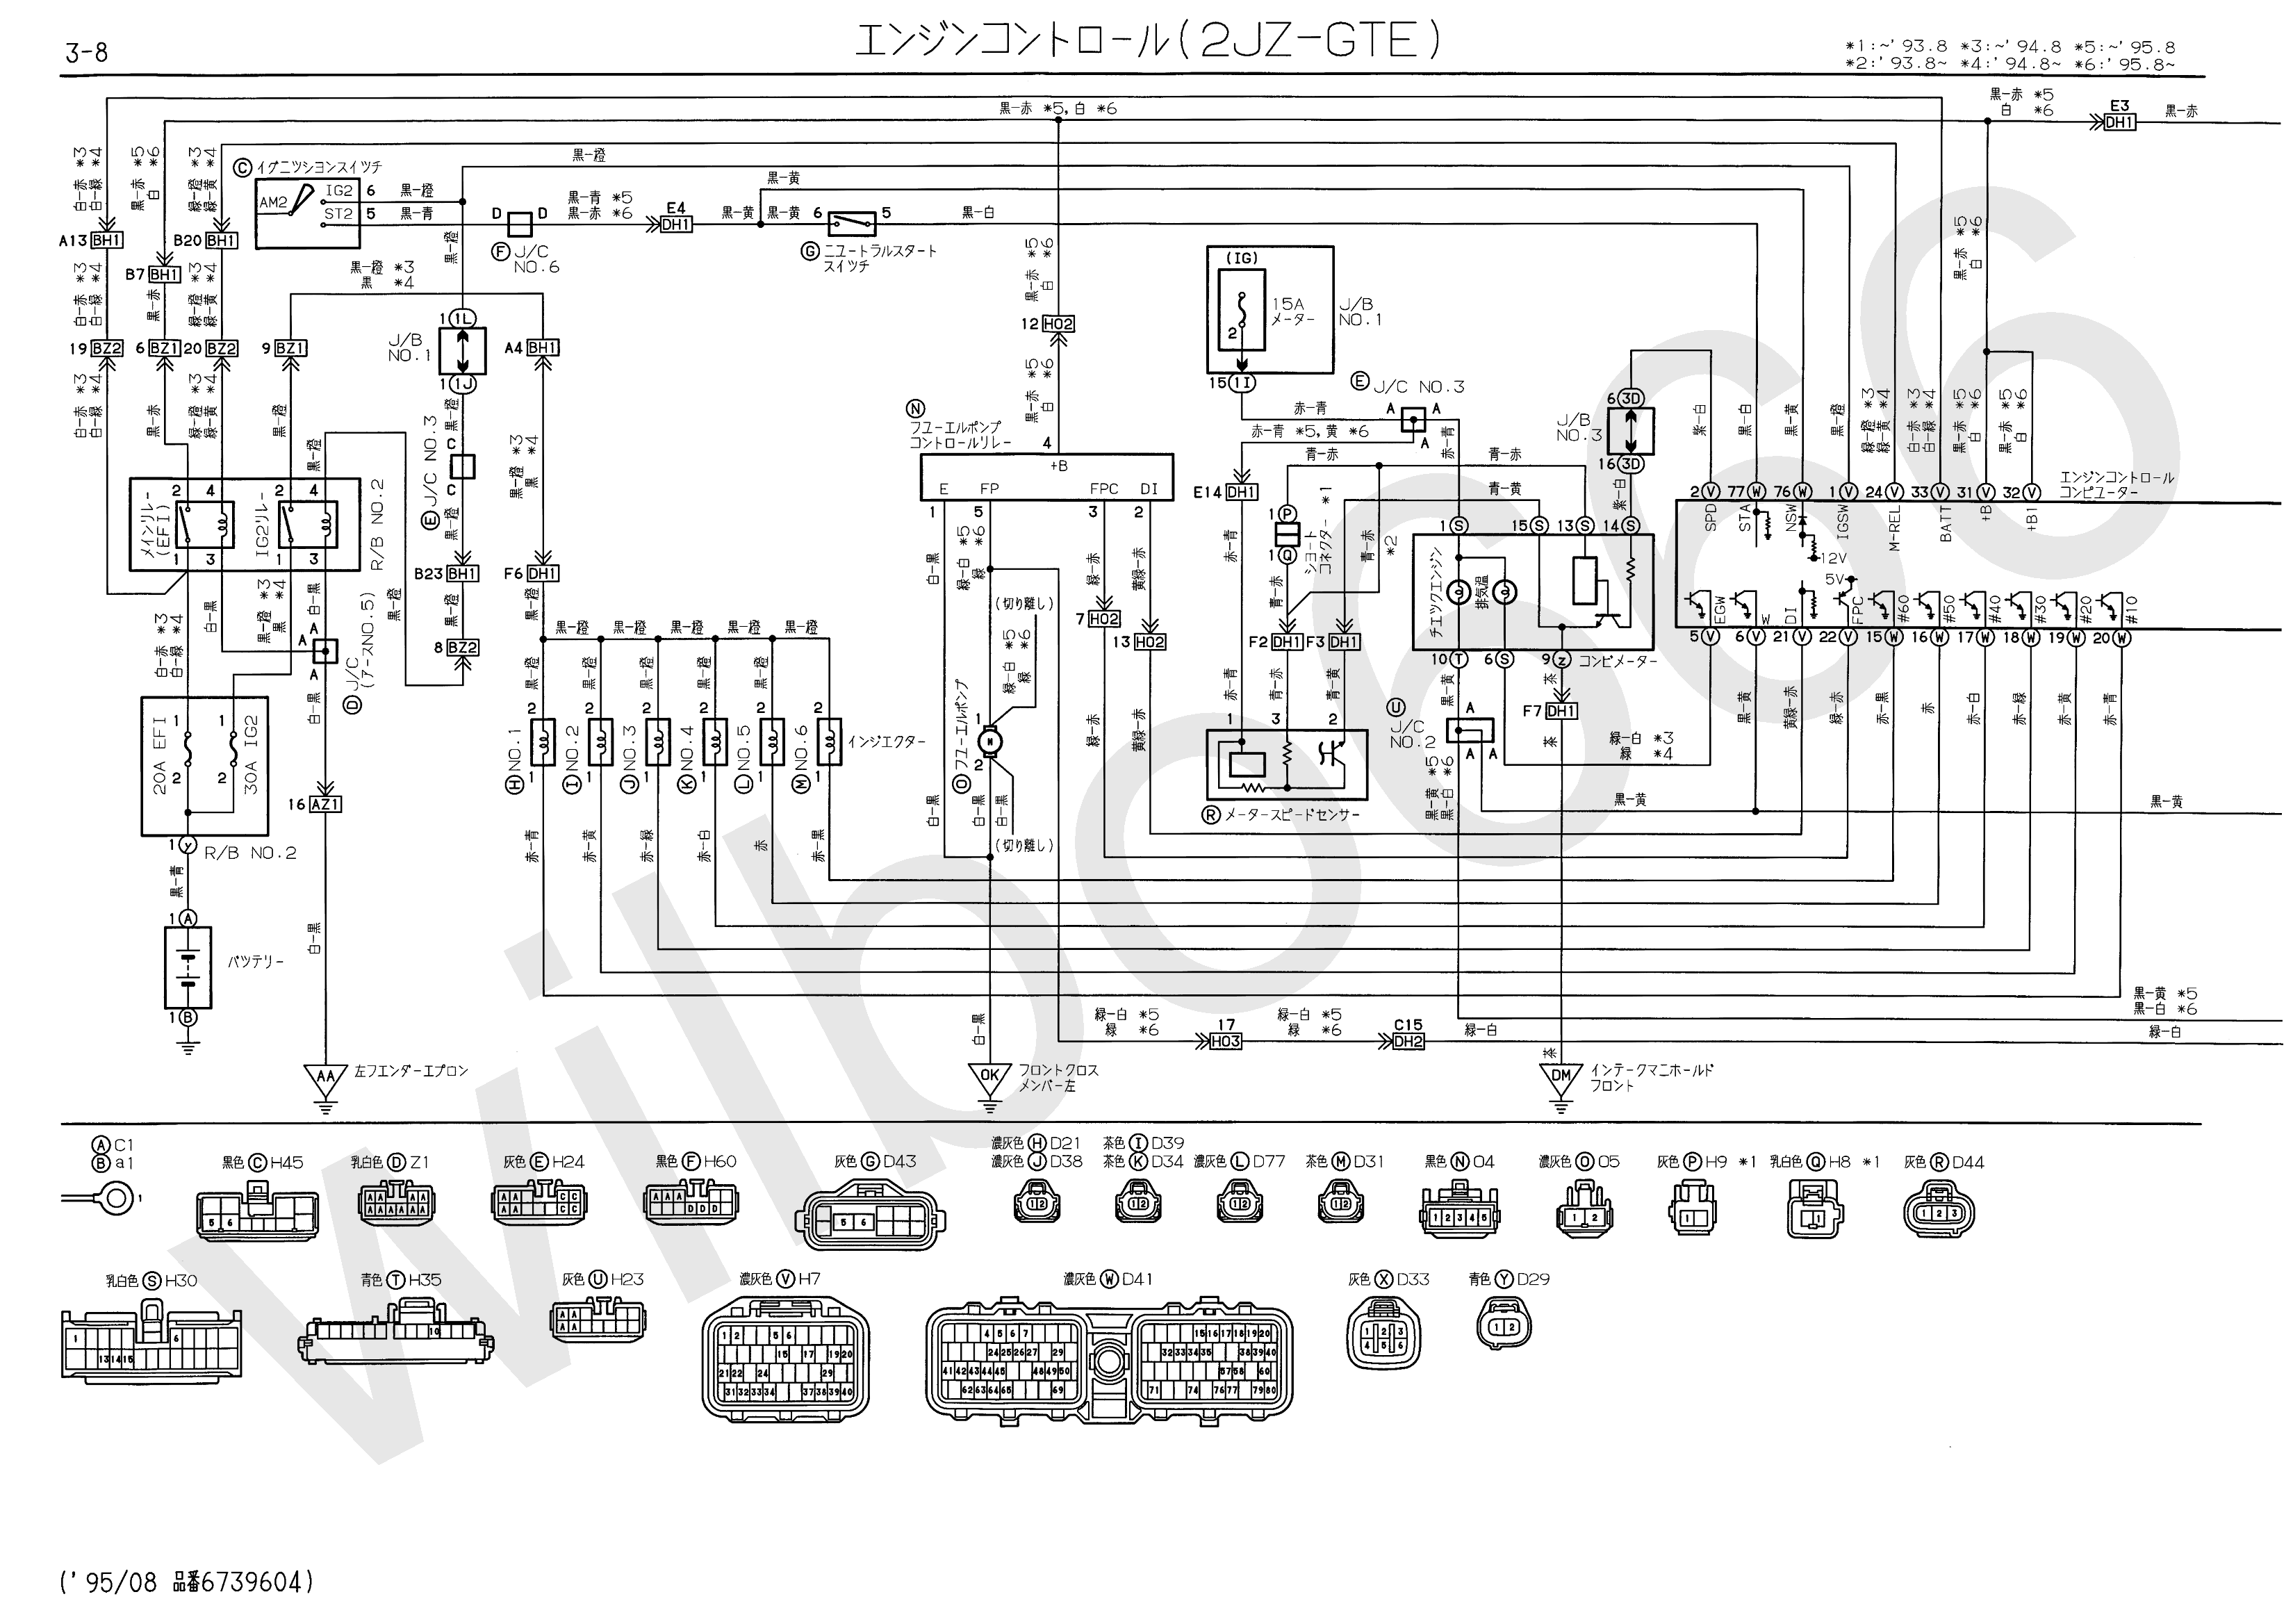 2jz alternator wiring diagram latest gallery photo 5 3 Alternator Wiring 2jz alternator wiring diagram how to megasquirt your toyota 22re jzs147 toyota aristo 2jz gte wiring Single Wire Alternator Wiring Diagram